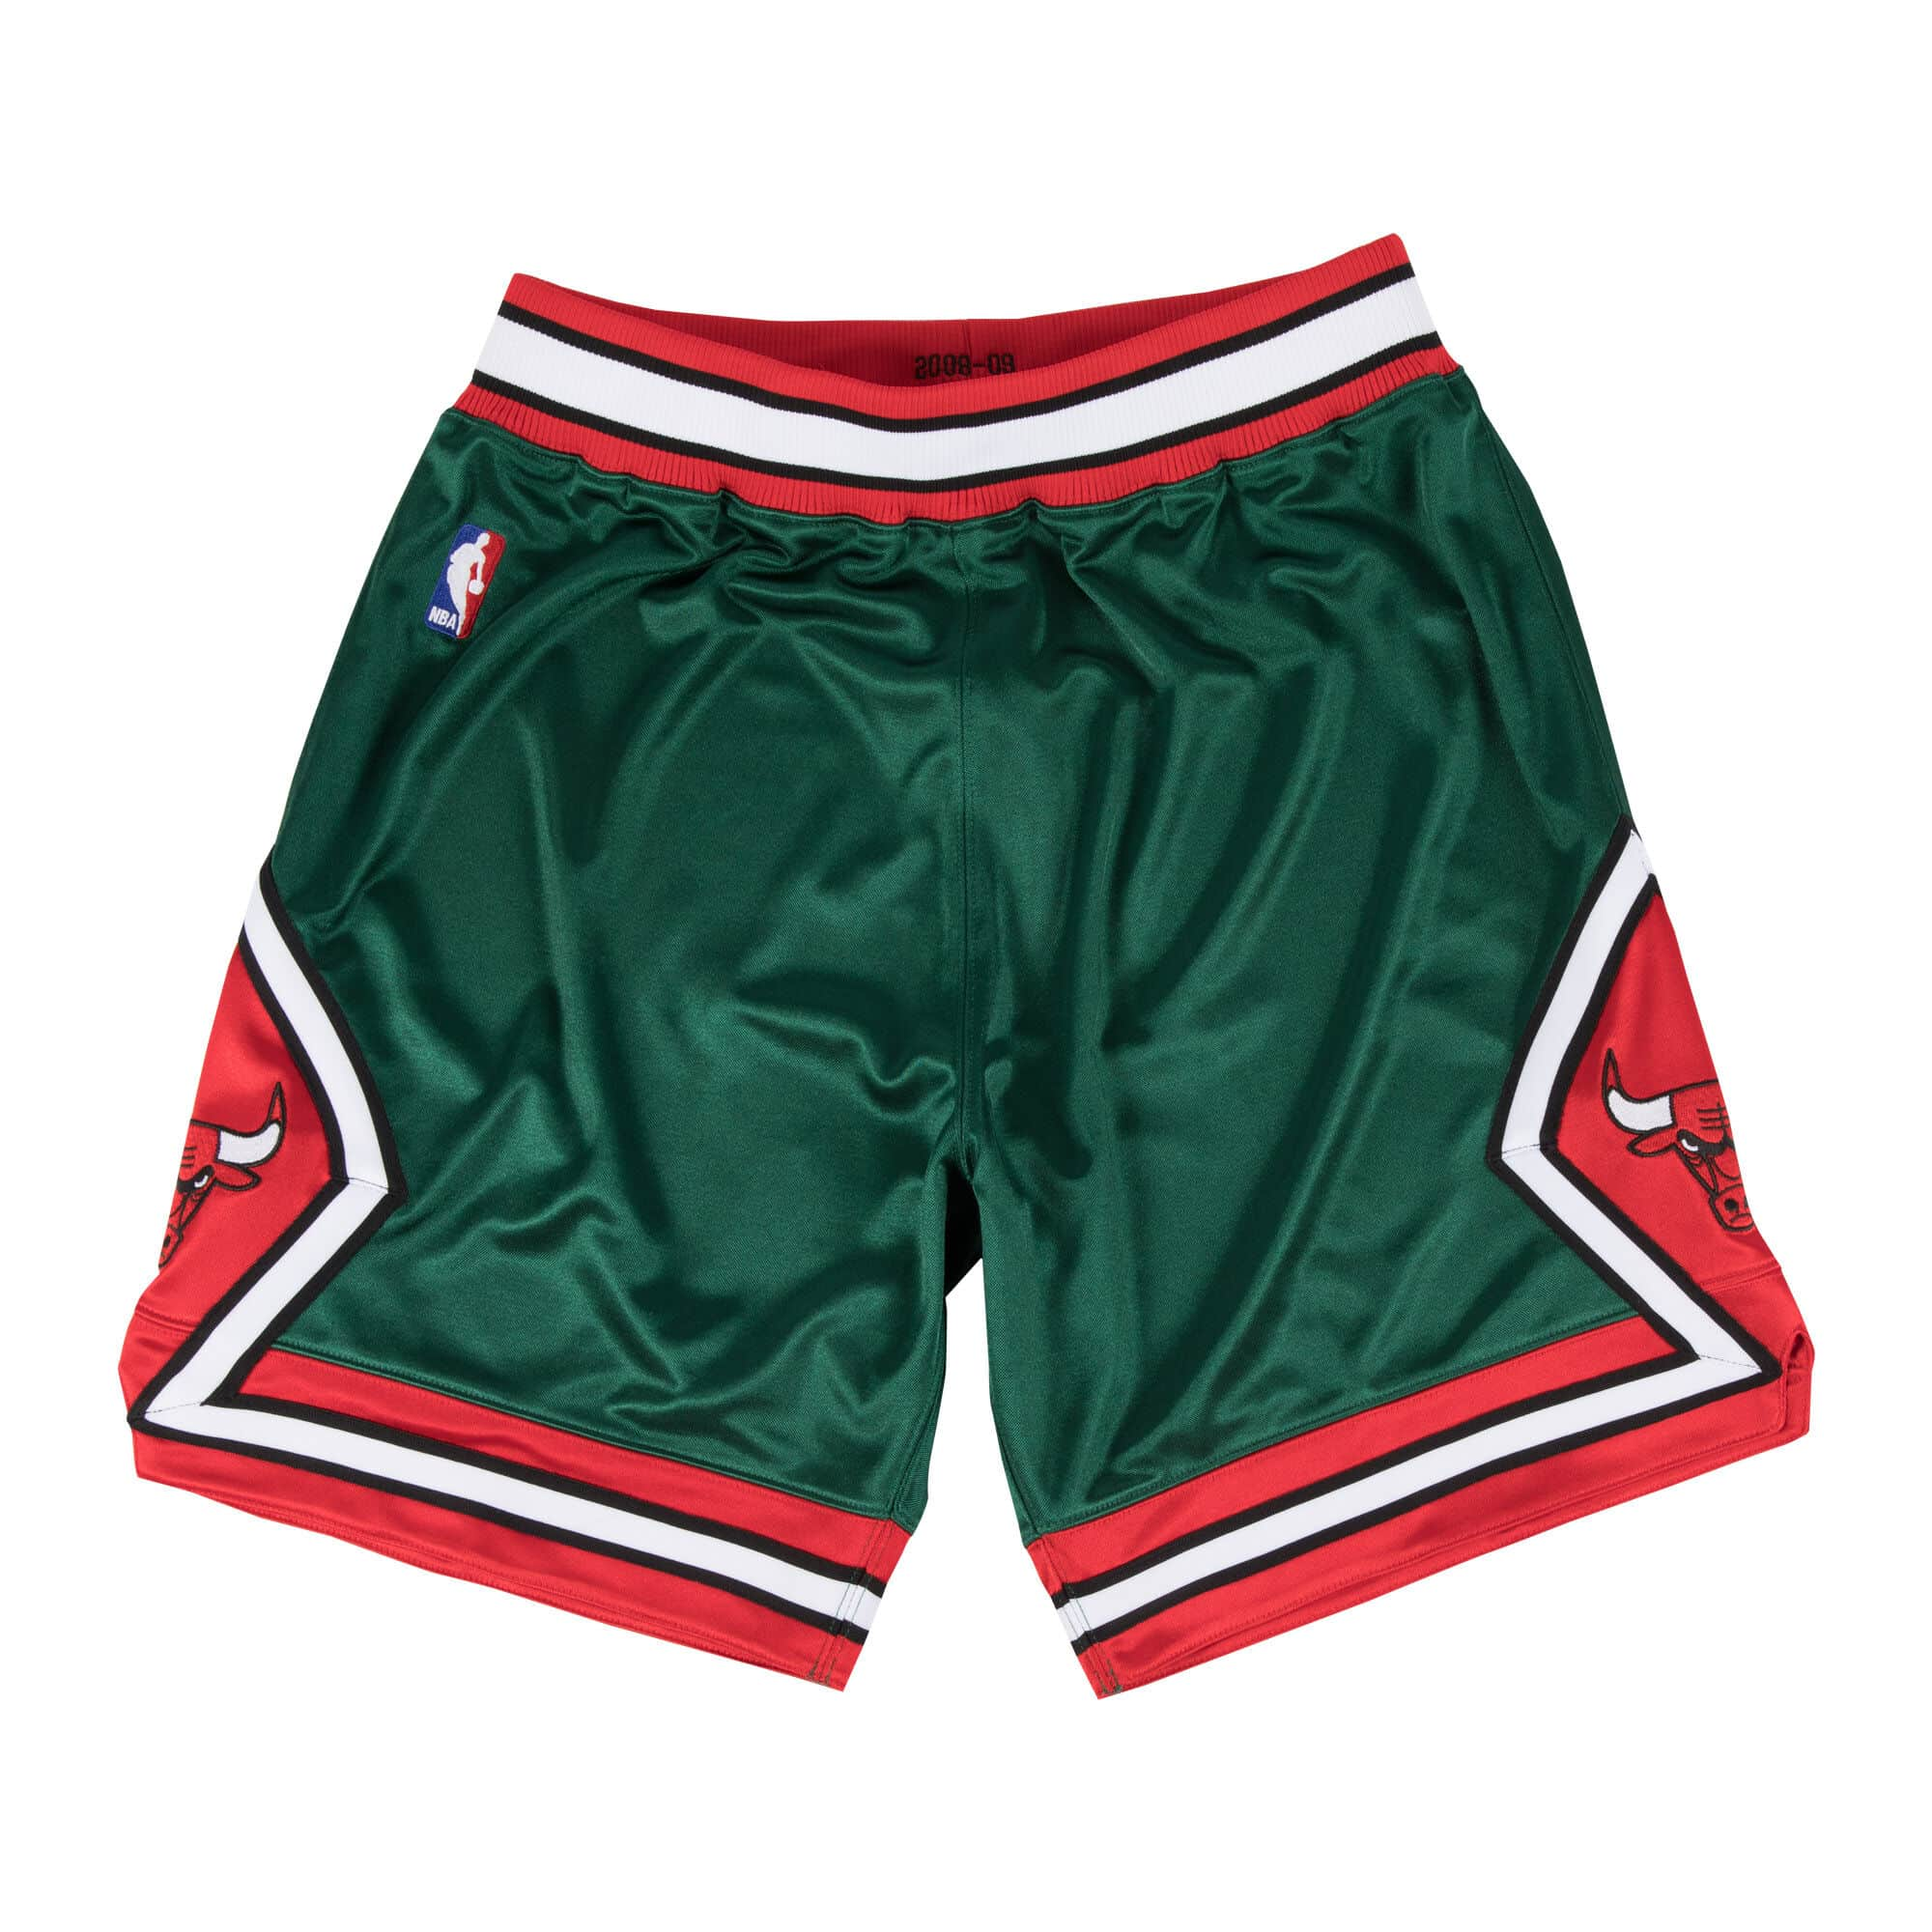 Authentic Shorts Chicago Bulls Green Week 2008-09